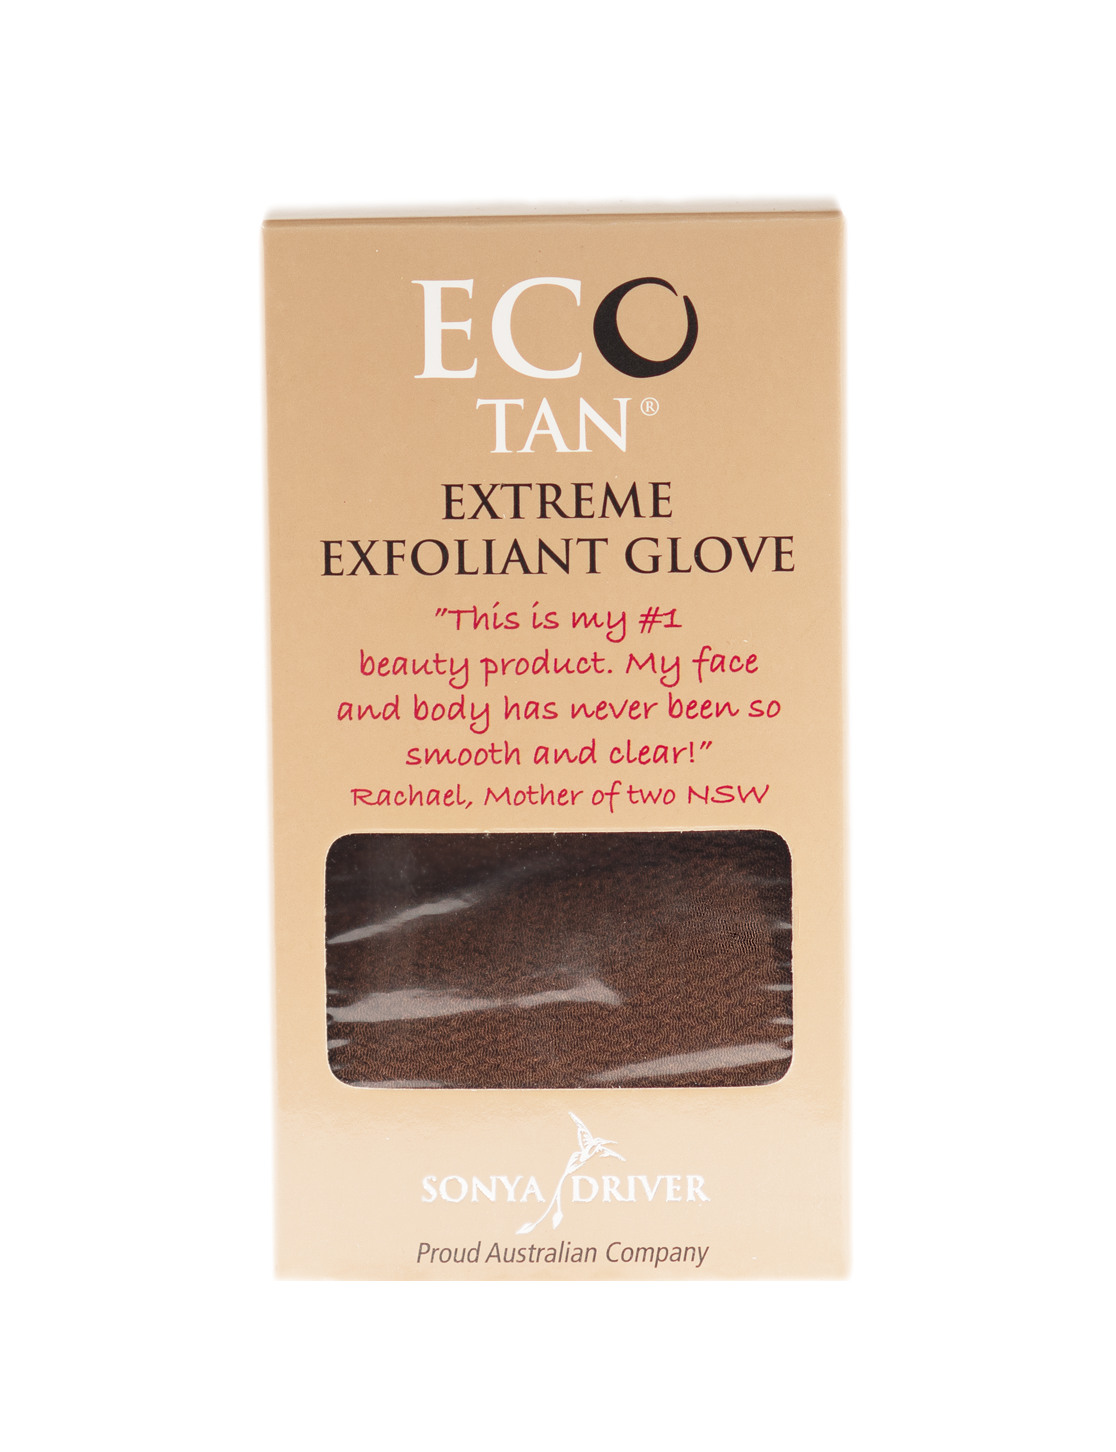 Eco Tan® - Extreme Exfoliating Glove is an extreme exfoliator that is brilliant for both pre & post tanning, along with many other uses including Cellulite, Blackhead, and Milia removal. The glove gently removes dead skin layers and old tans to reveal fresh, smooth skin underneath. The glove can be used both as a dry buff, or used with water. For cleaning and care of your glove, simple rinse and hang to dry in the shower.